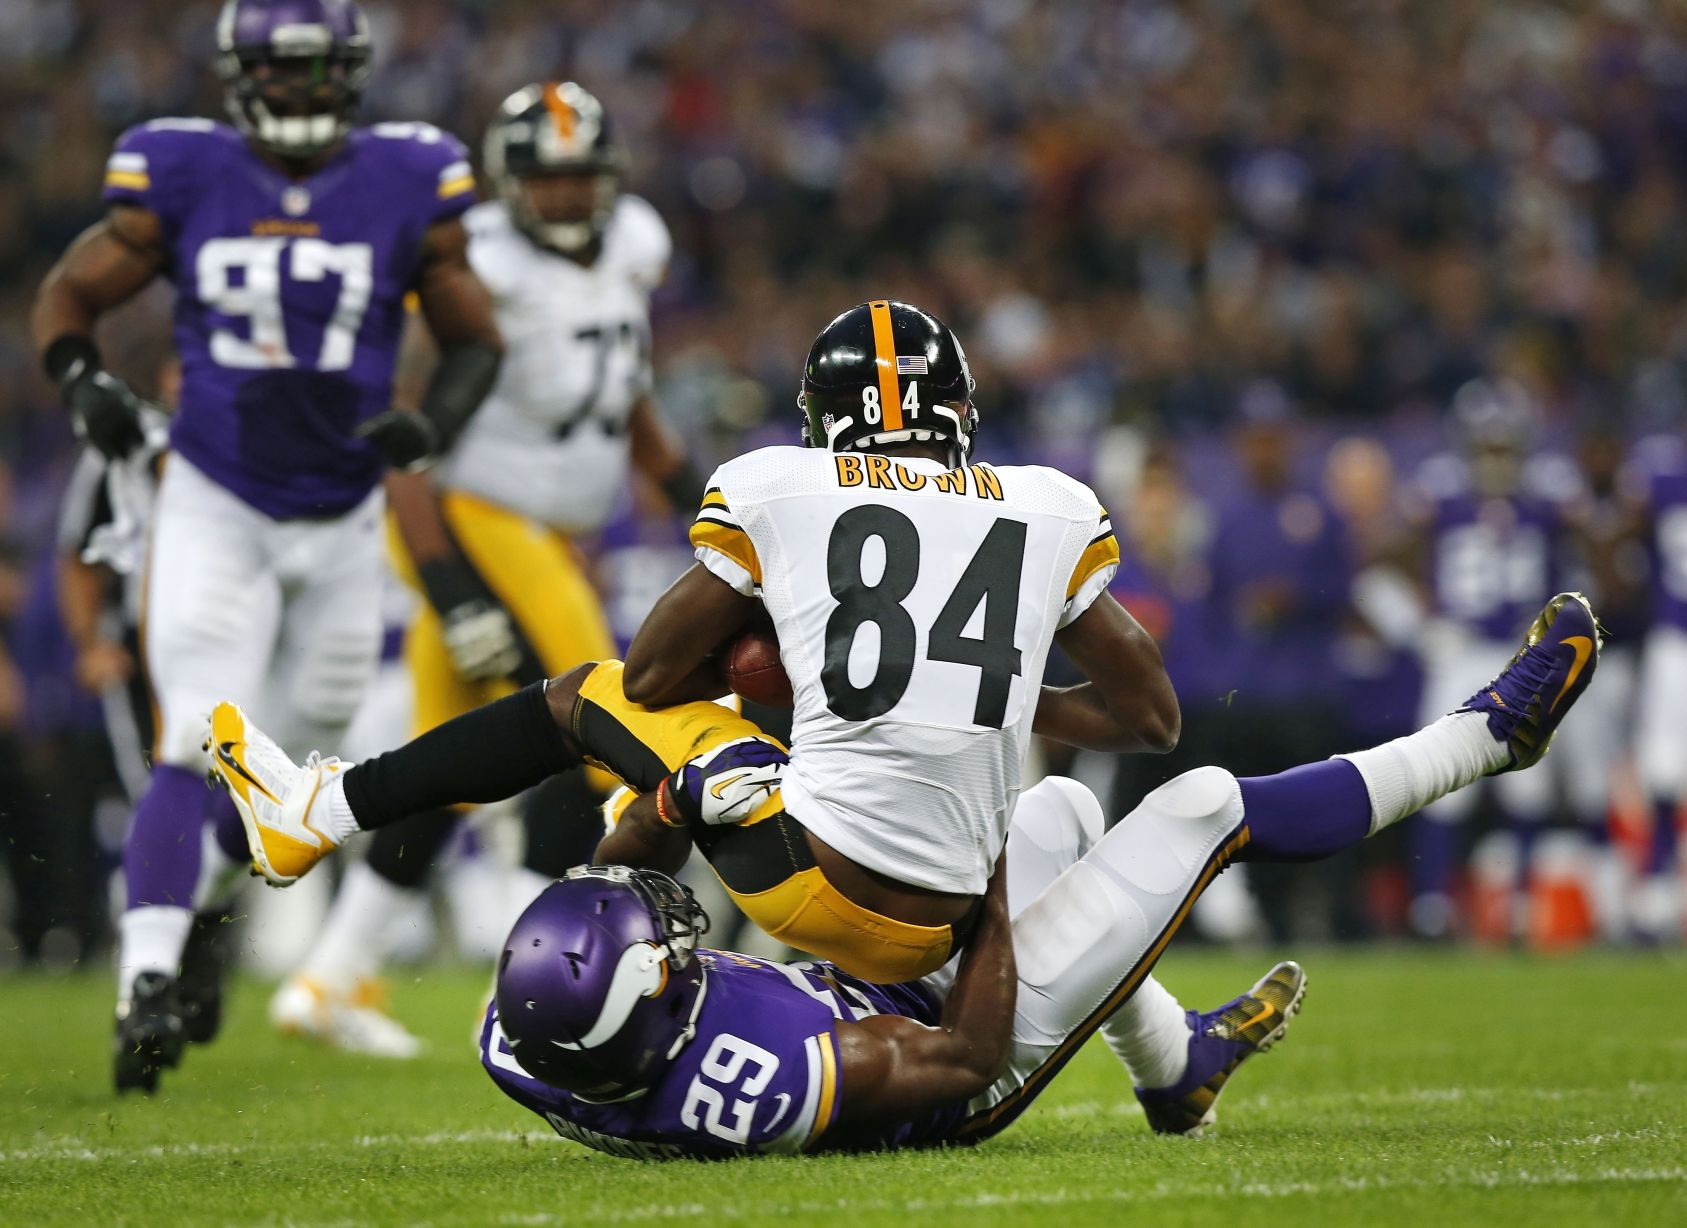 Vikings, Steelers square off after opening wins